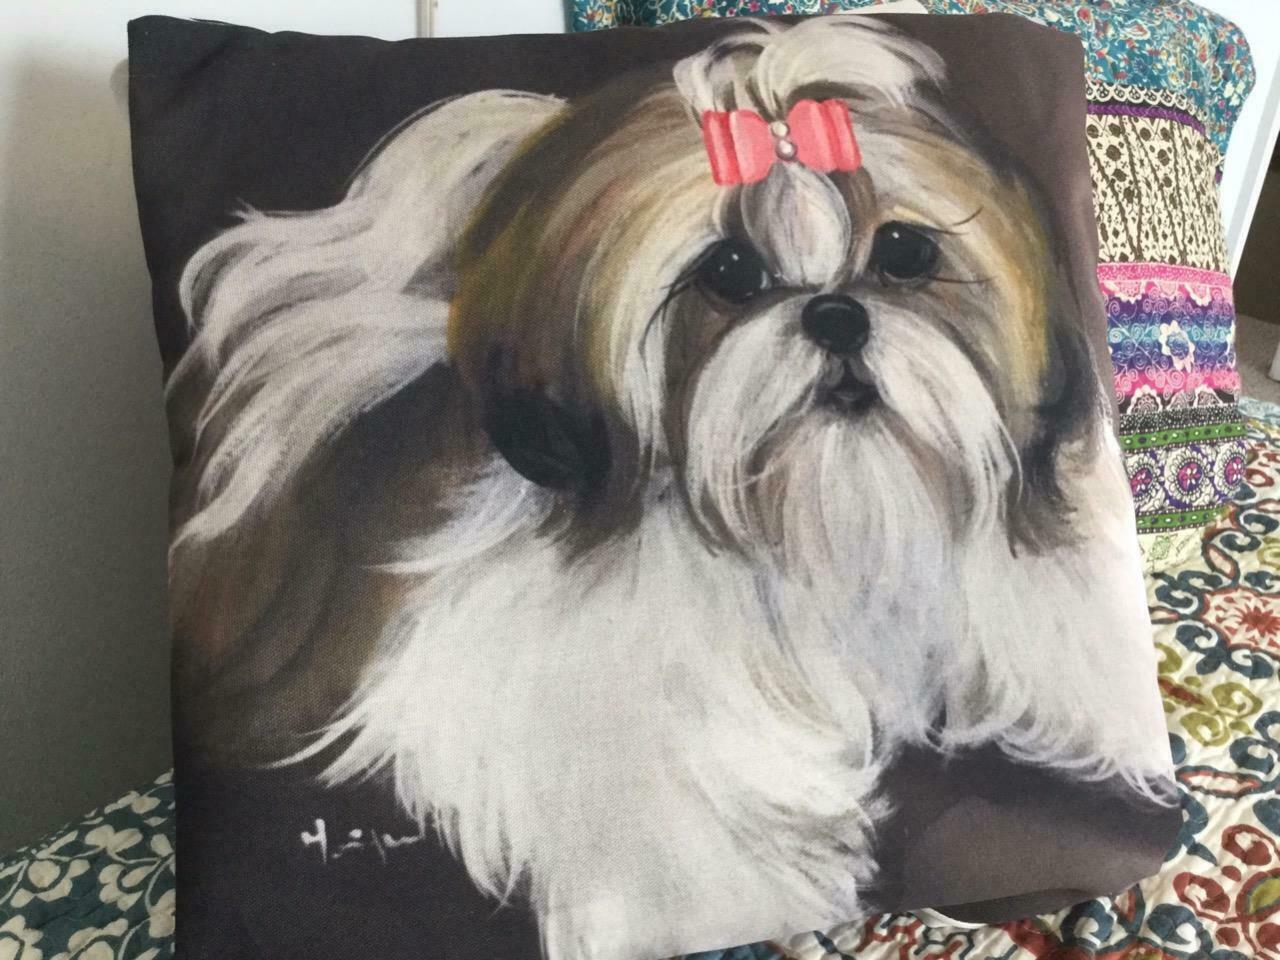 Primary image for SHIH TZU PRINTED PILLOW FROM MONIQUE'S BEST SHIH TZU PAINTING